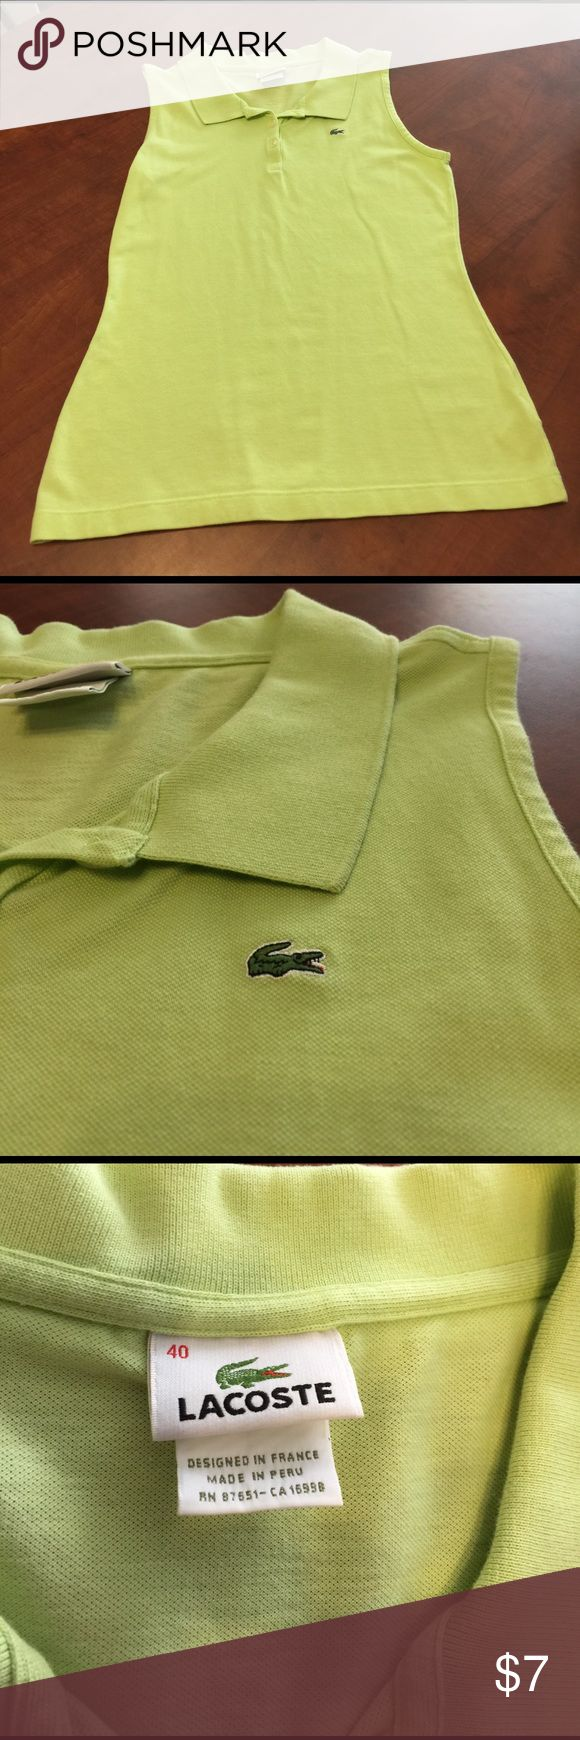 Lacoste shirt in lime green so pretty Lacoste shirt in lime green is so pretty. Size 40 is like a medium Lacoste Tops